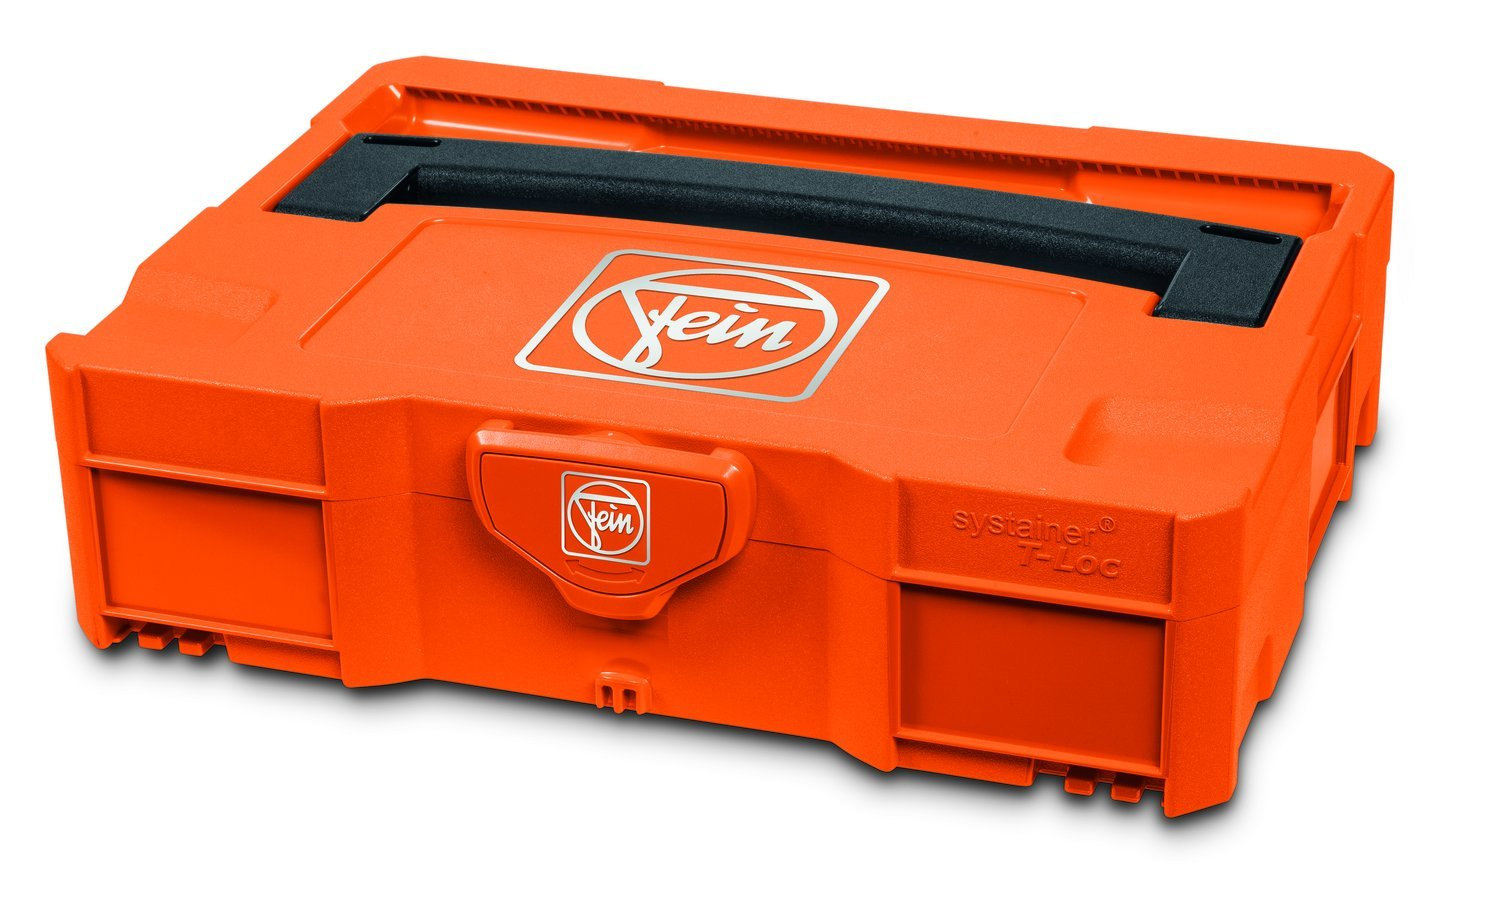 FEIN Systainer Sys 1 33901146000